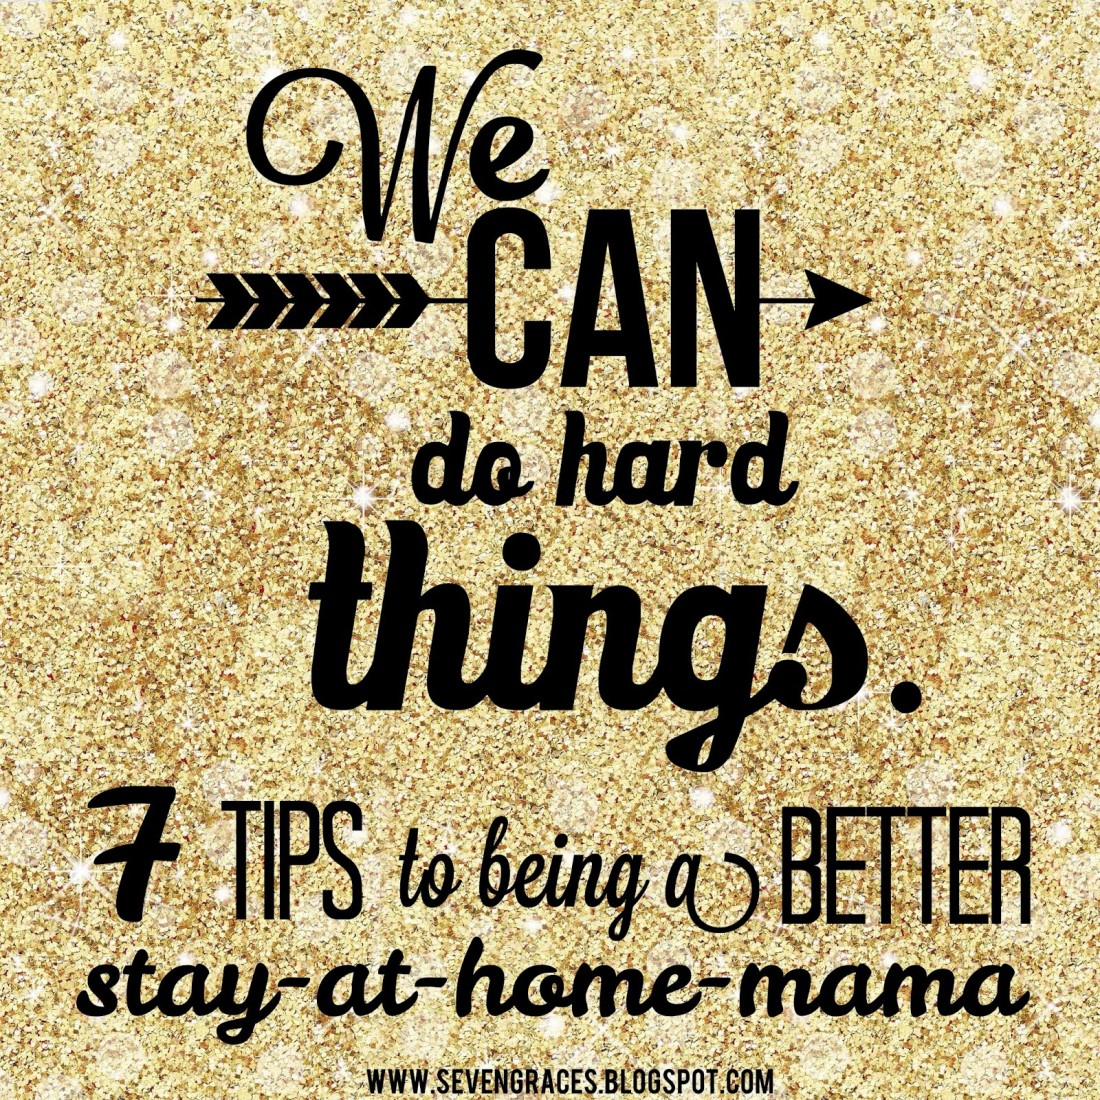 7 tips to being a better stay-at-home mom. These are must reads! SAHM advice to make life a happy one.